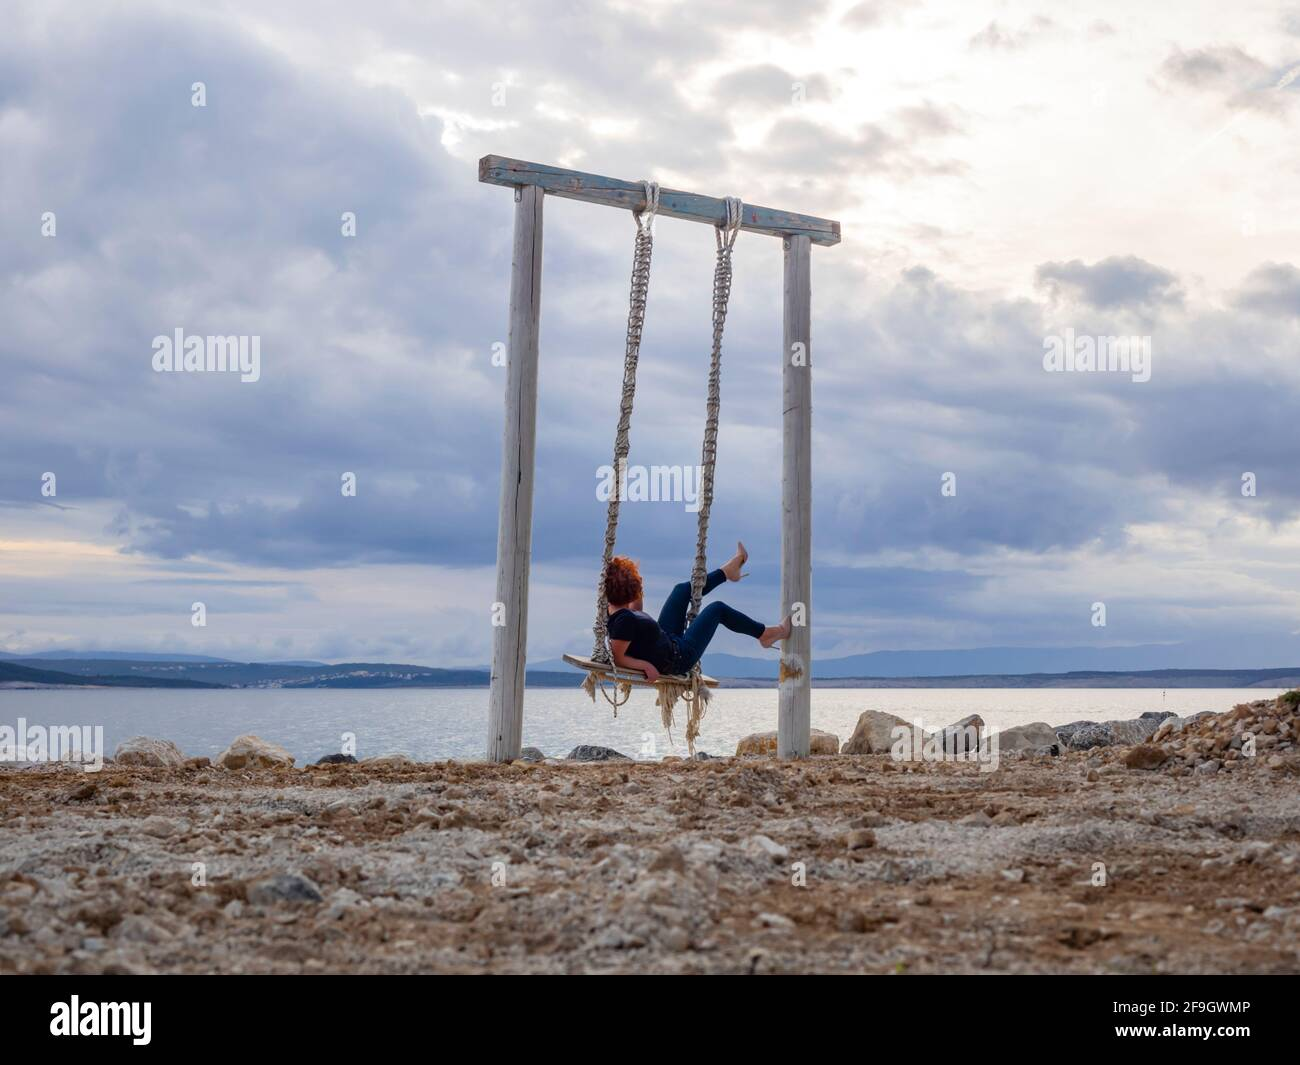 Playful woman on swings against coastline horizon raised raising legs leg upwards heels Stock Photo